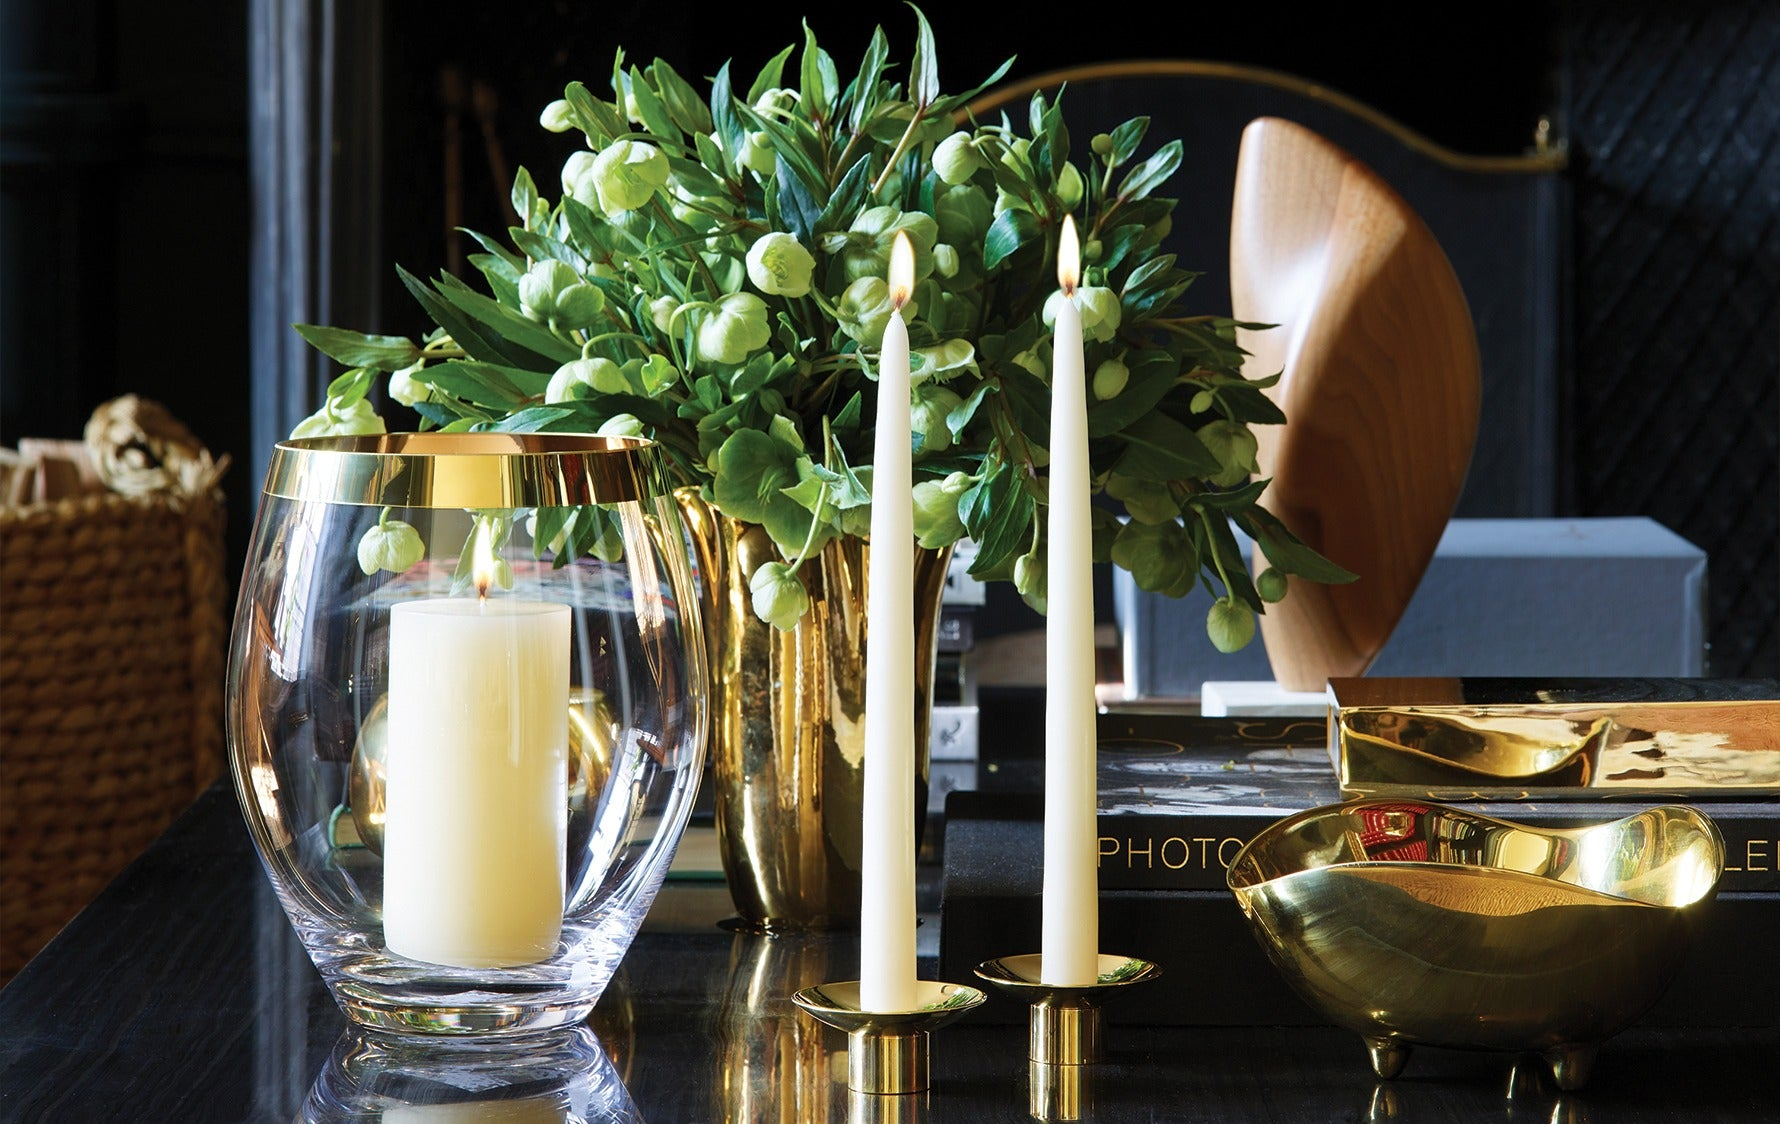 Winter Themed Table Decorations | How to Decorate your Home for Winter | Read more in the LuxDeco Style Guide